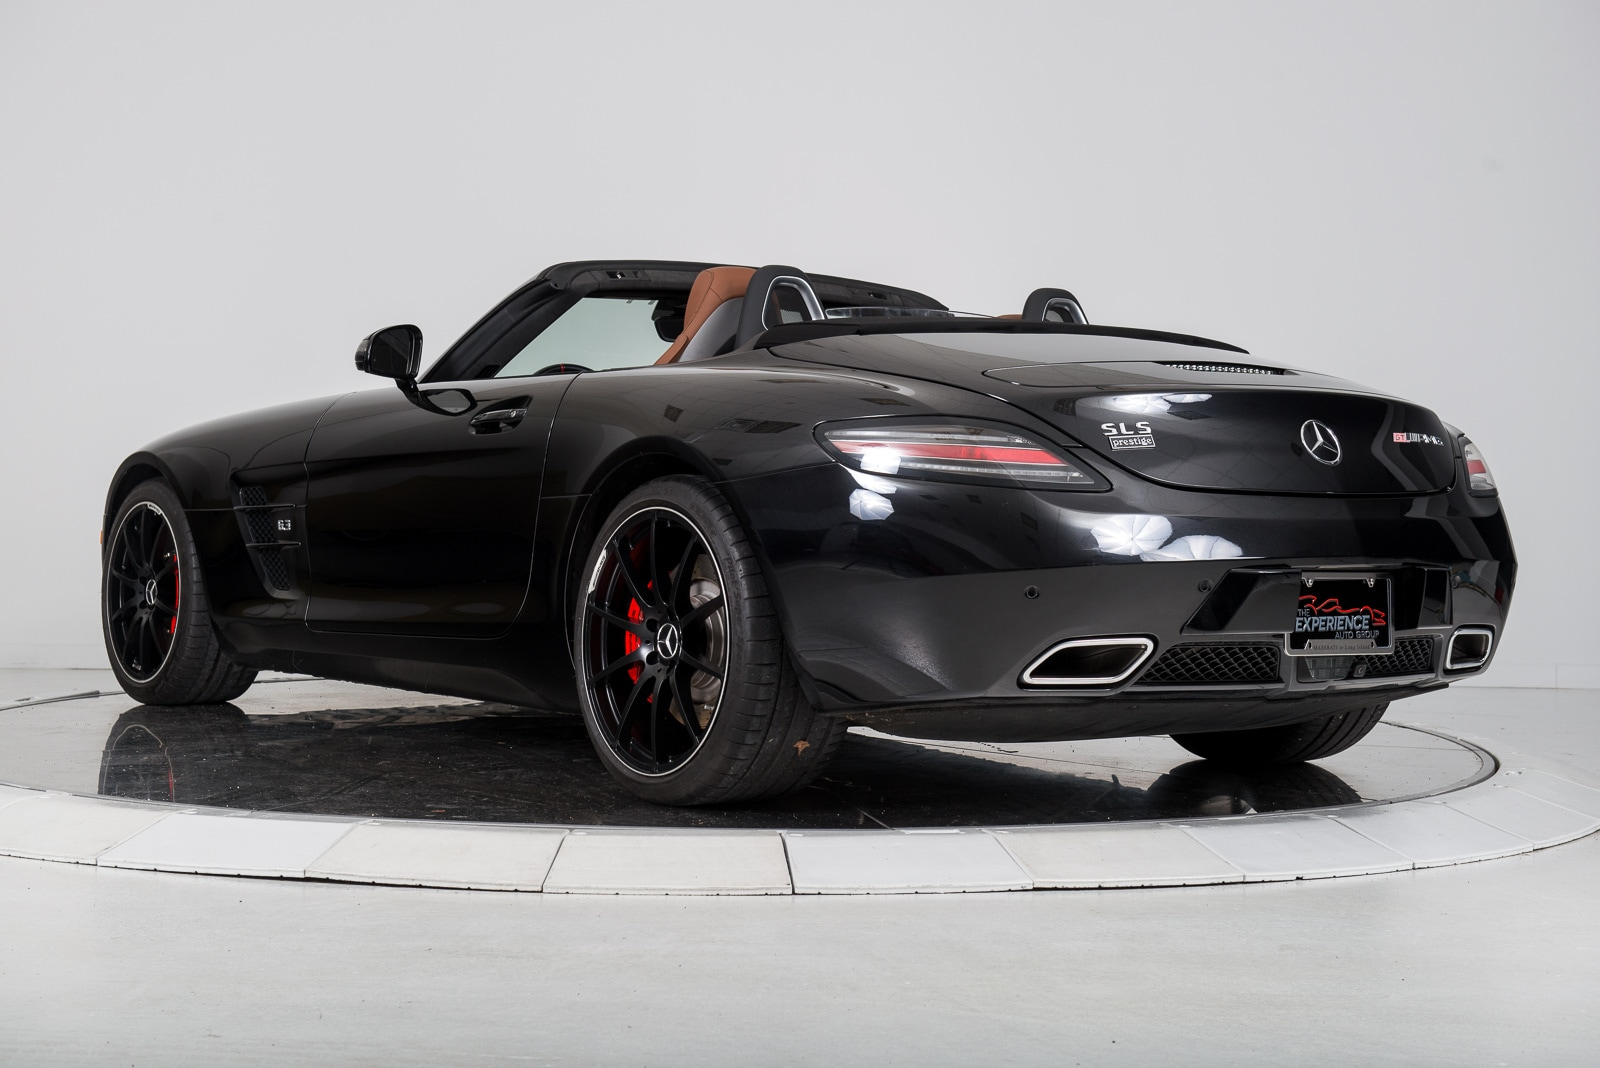 Used 2013 mercedes benz sls amg gt roadster for sale for Mercedes benz sls amg convertible for sale